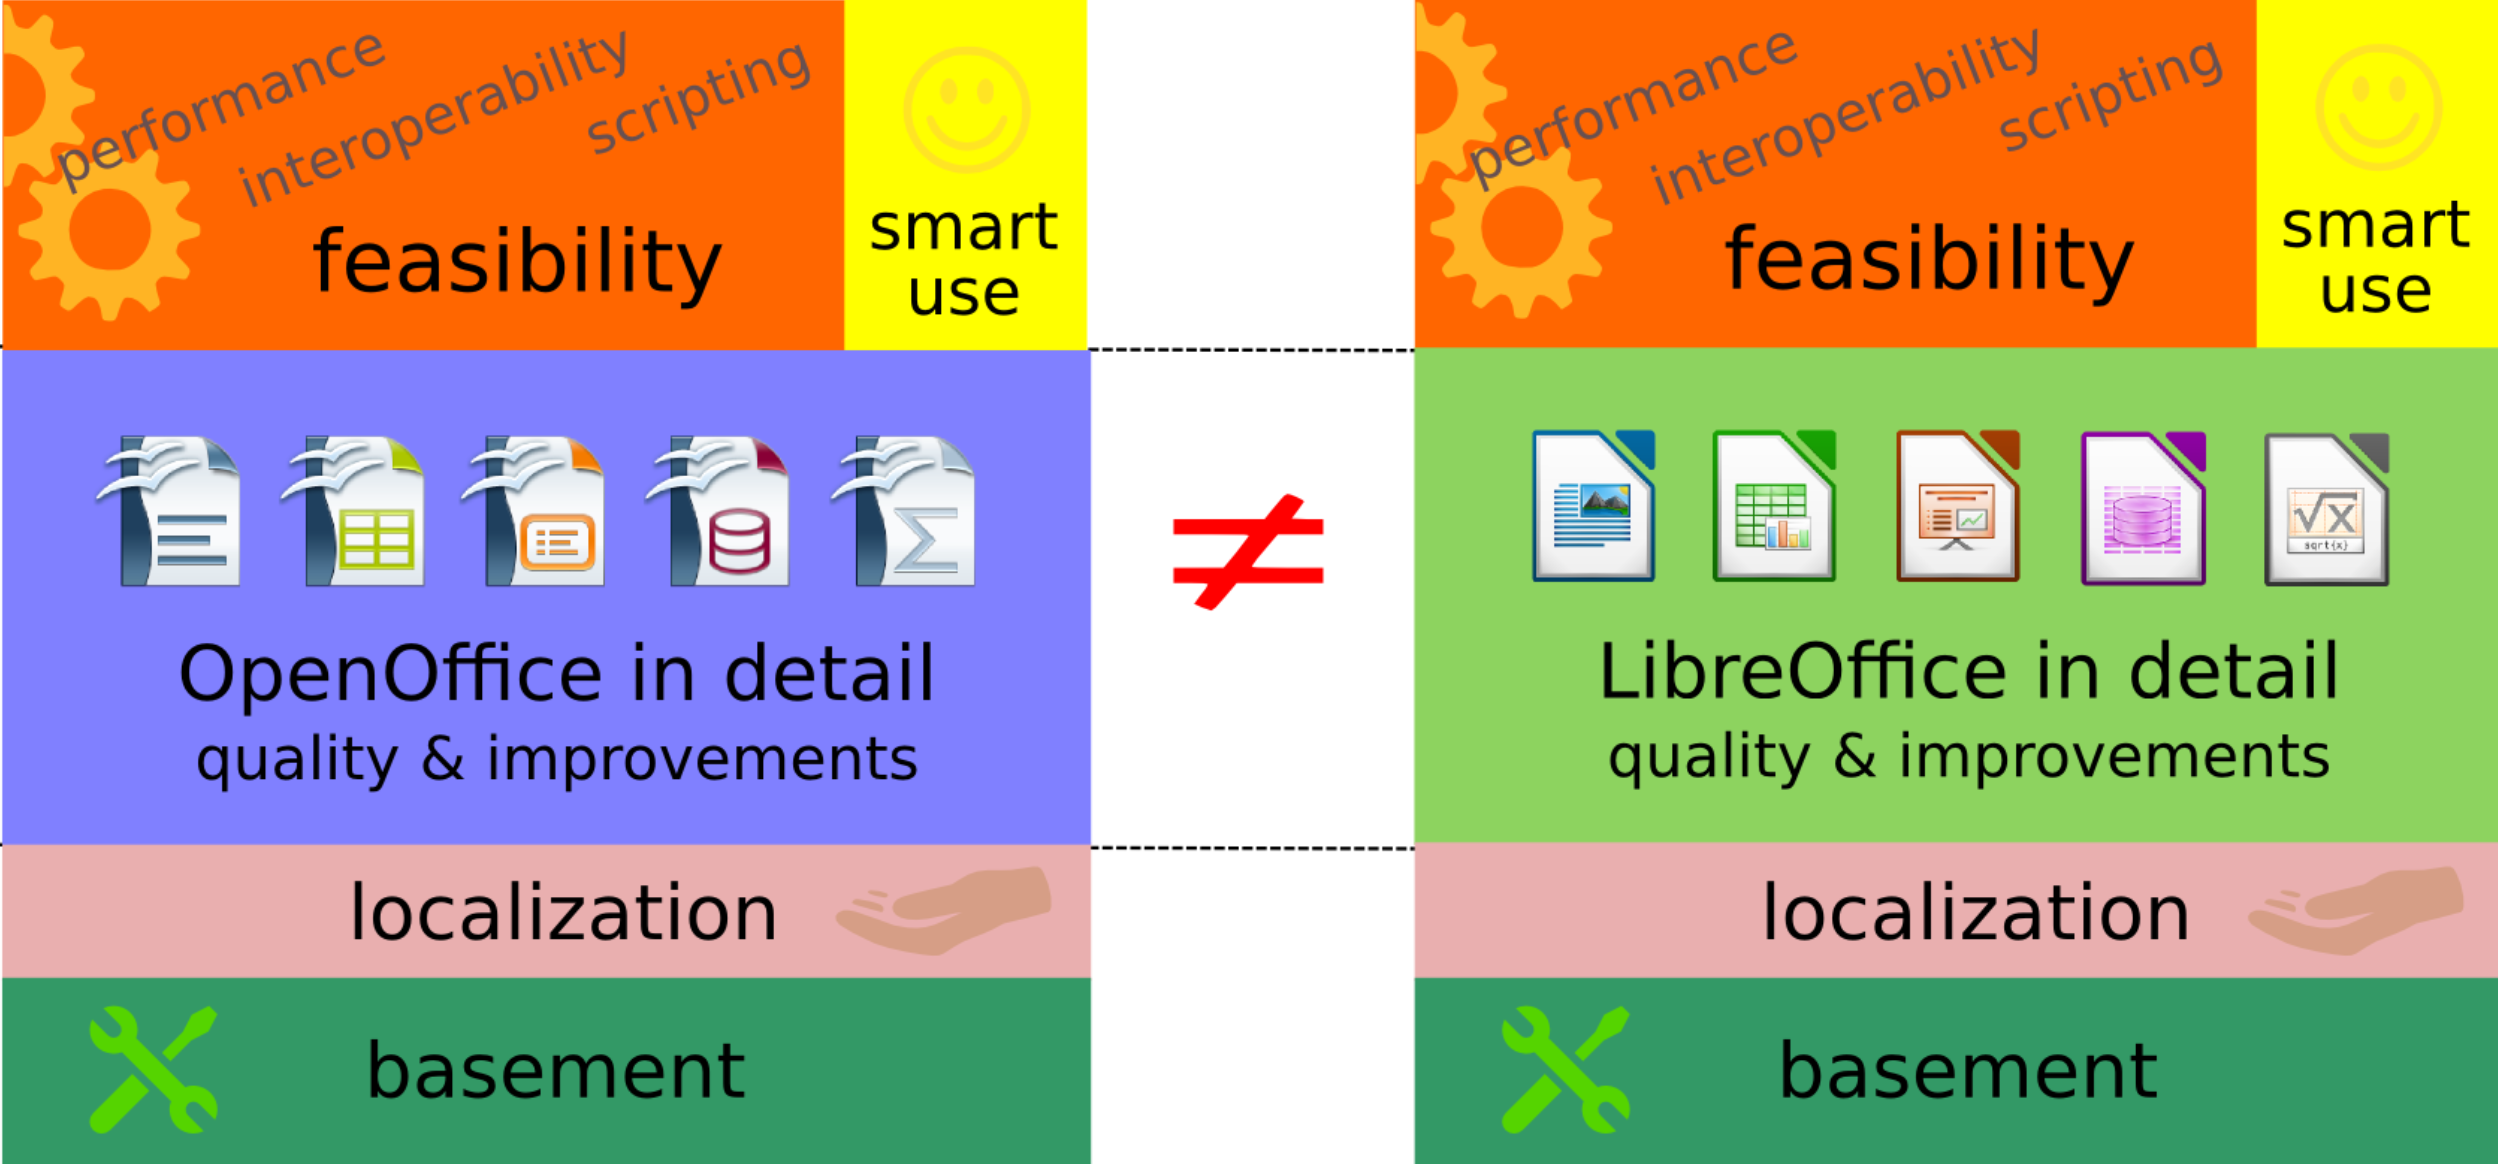 Comparing LibreOffice and Apache OpenOffice: functional model